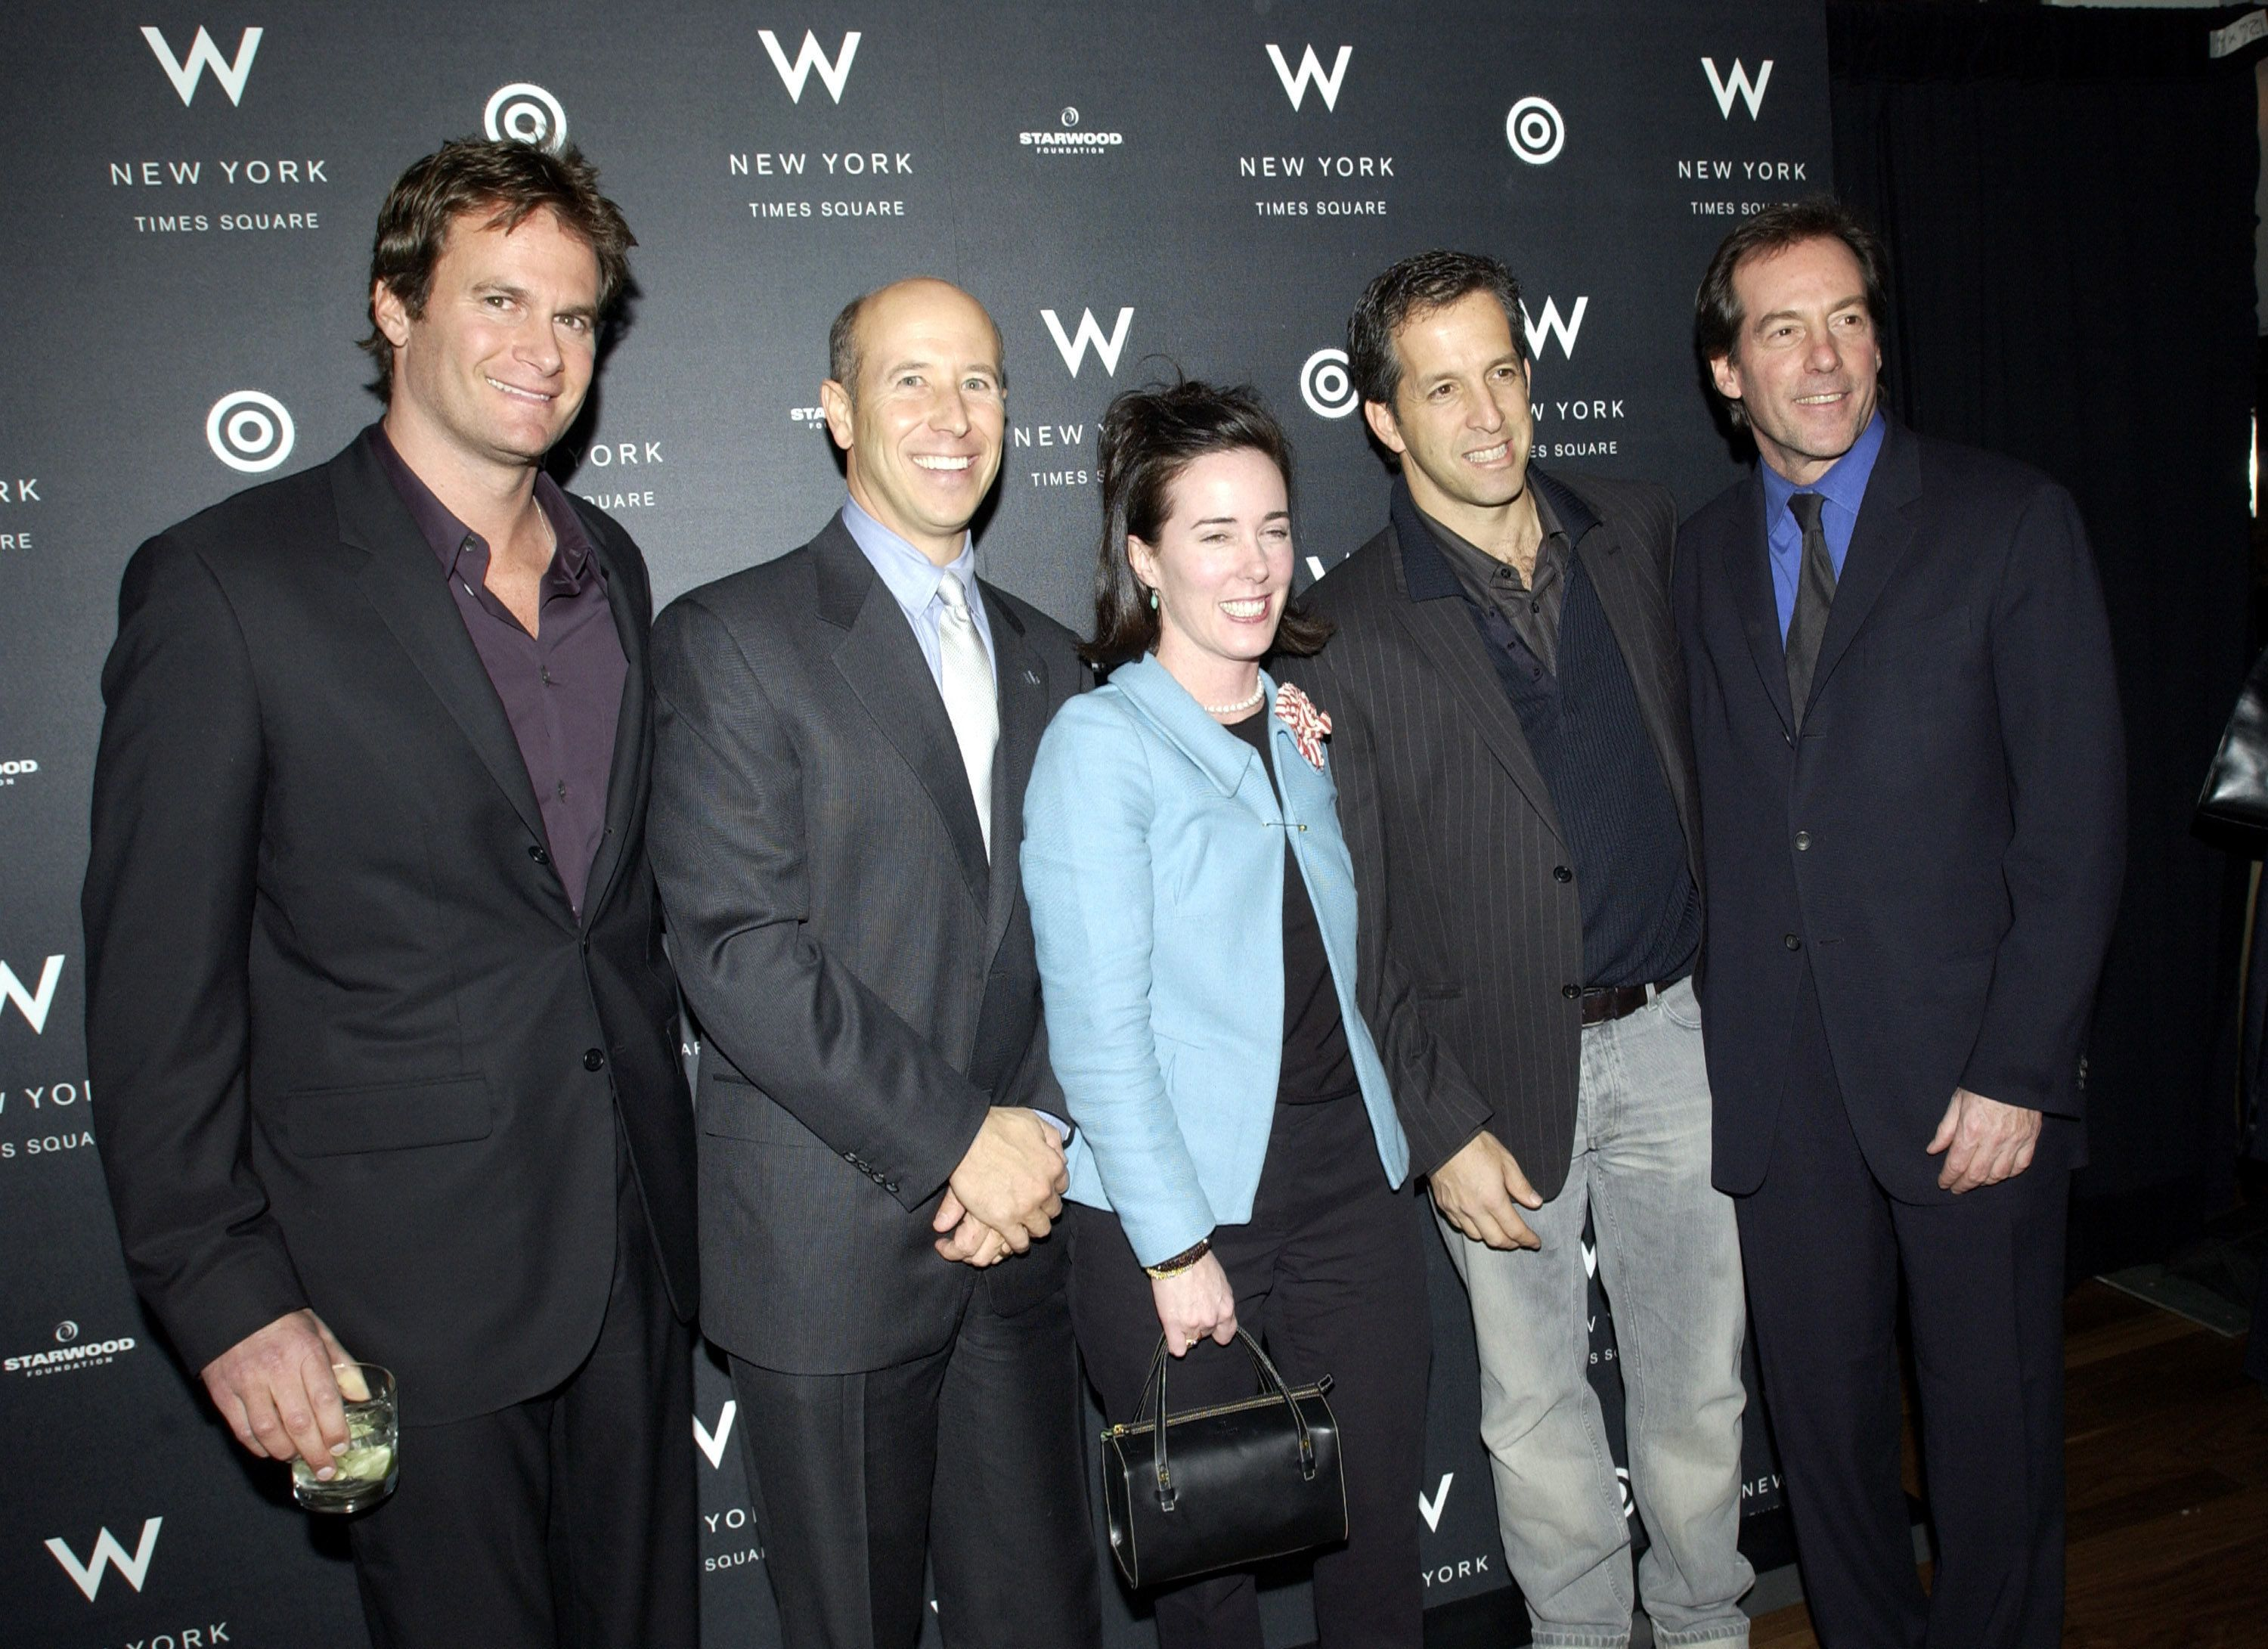 Kate Spade and Kenneth Cole (to the right of Spade) pictured together at a 2002 event.